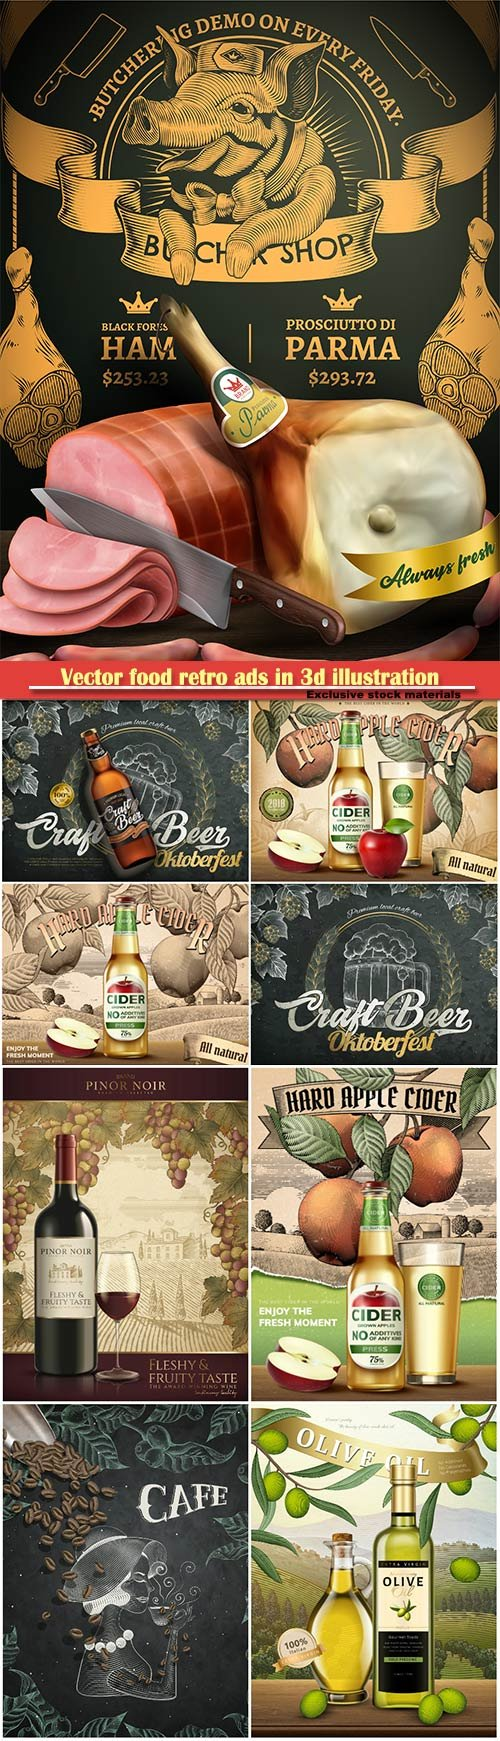 Vector food retro ads in 3d illustration, engraving style background